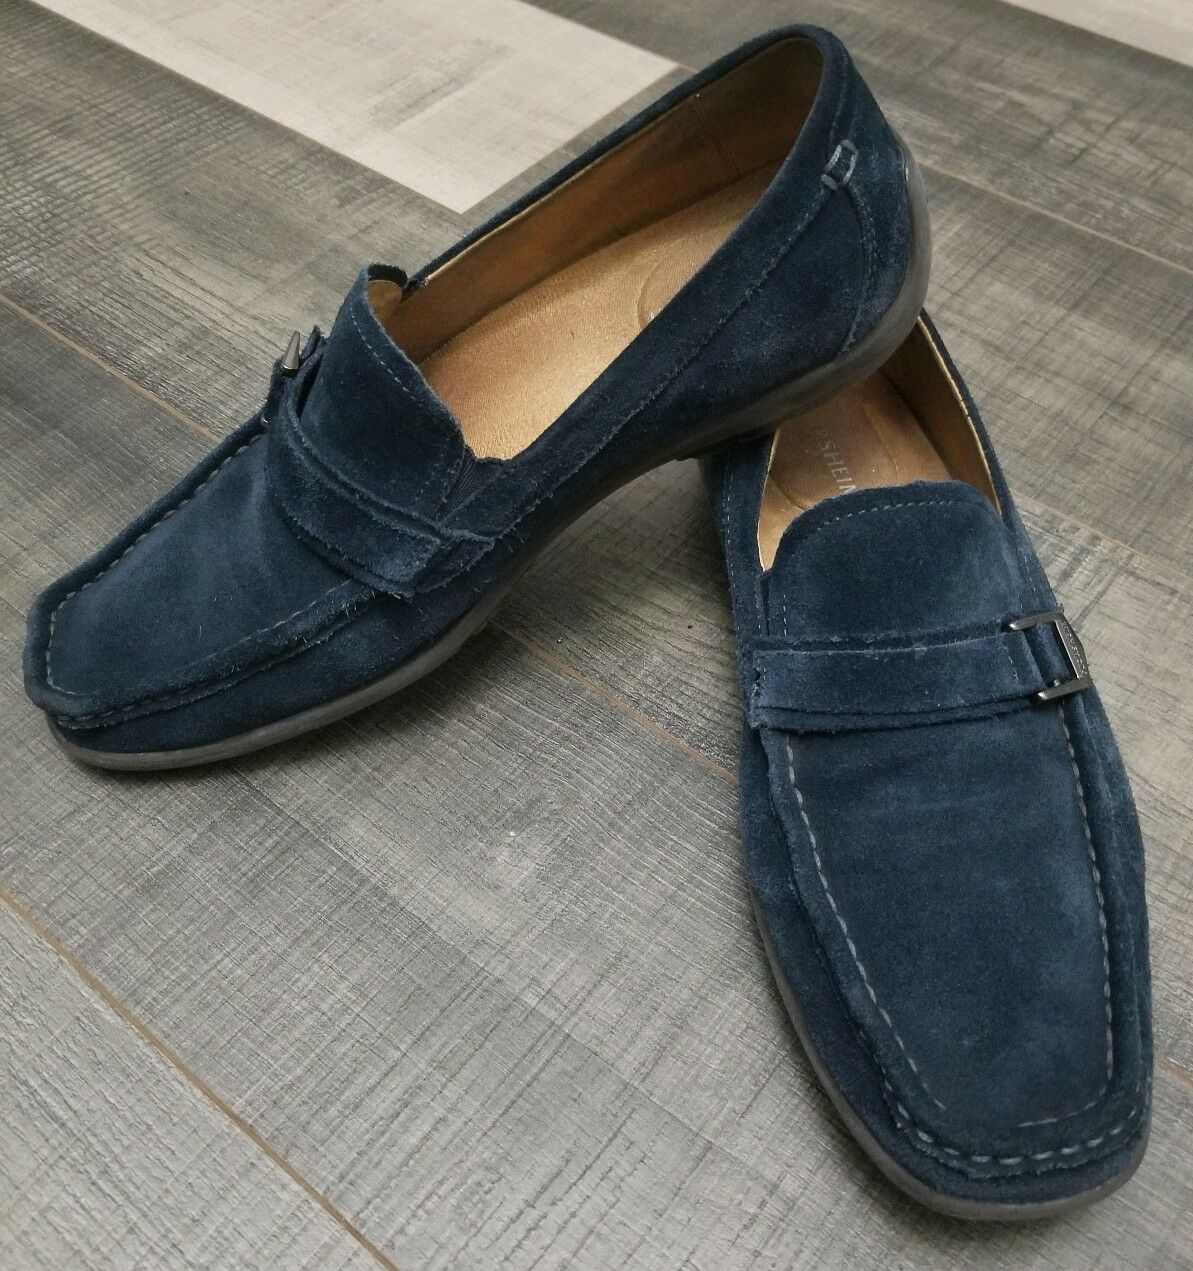 Florsheim - Navy Blue Suede Oval Mock Toe Loafer Shoes Mens - Size 8 D Medium